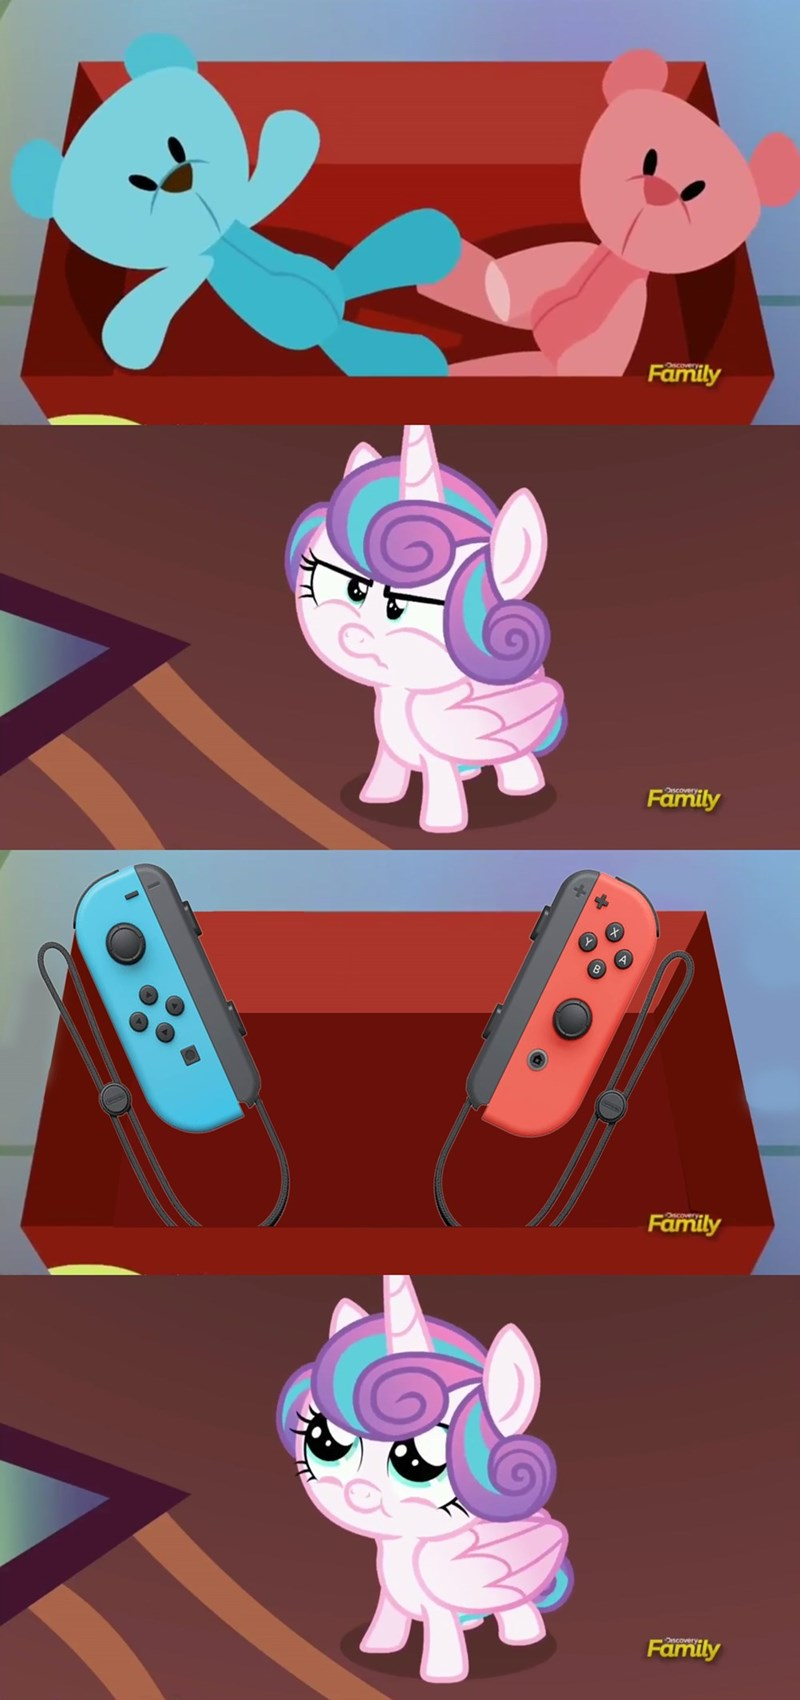 nintendo switch flurry heart screencap comic a flurry of emotions - 9028833024